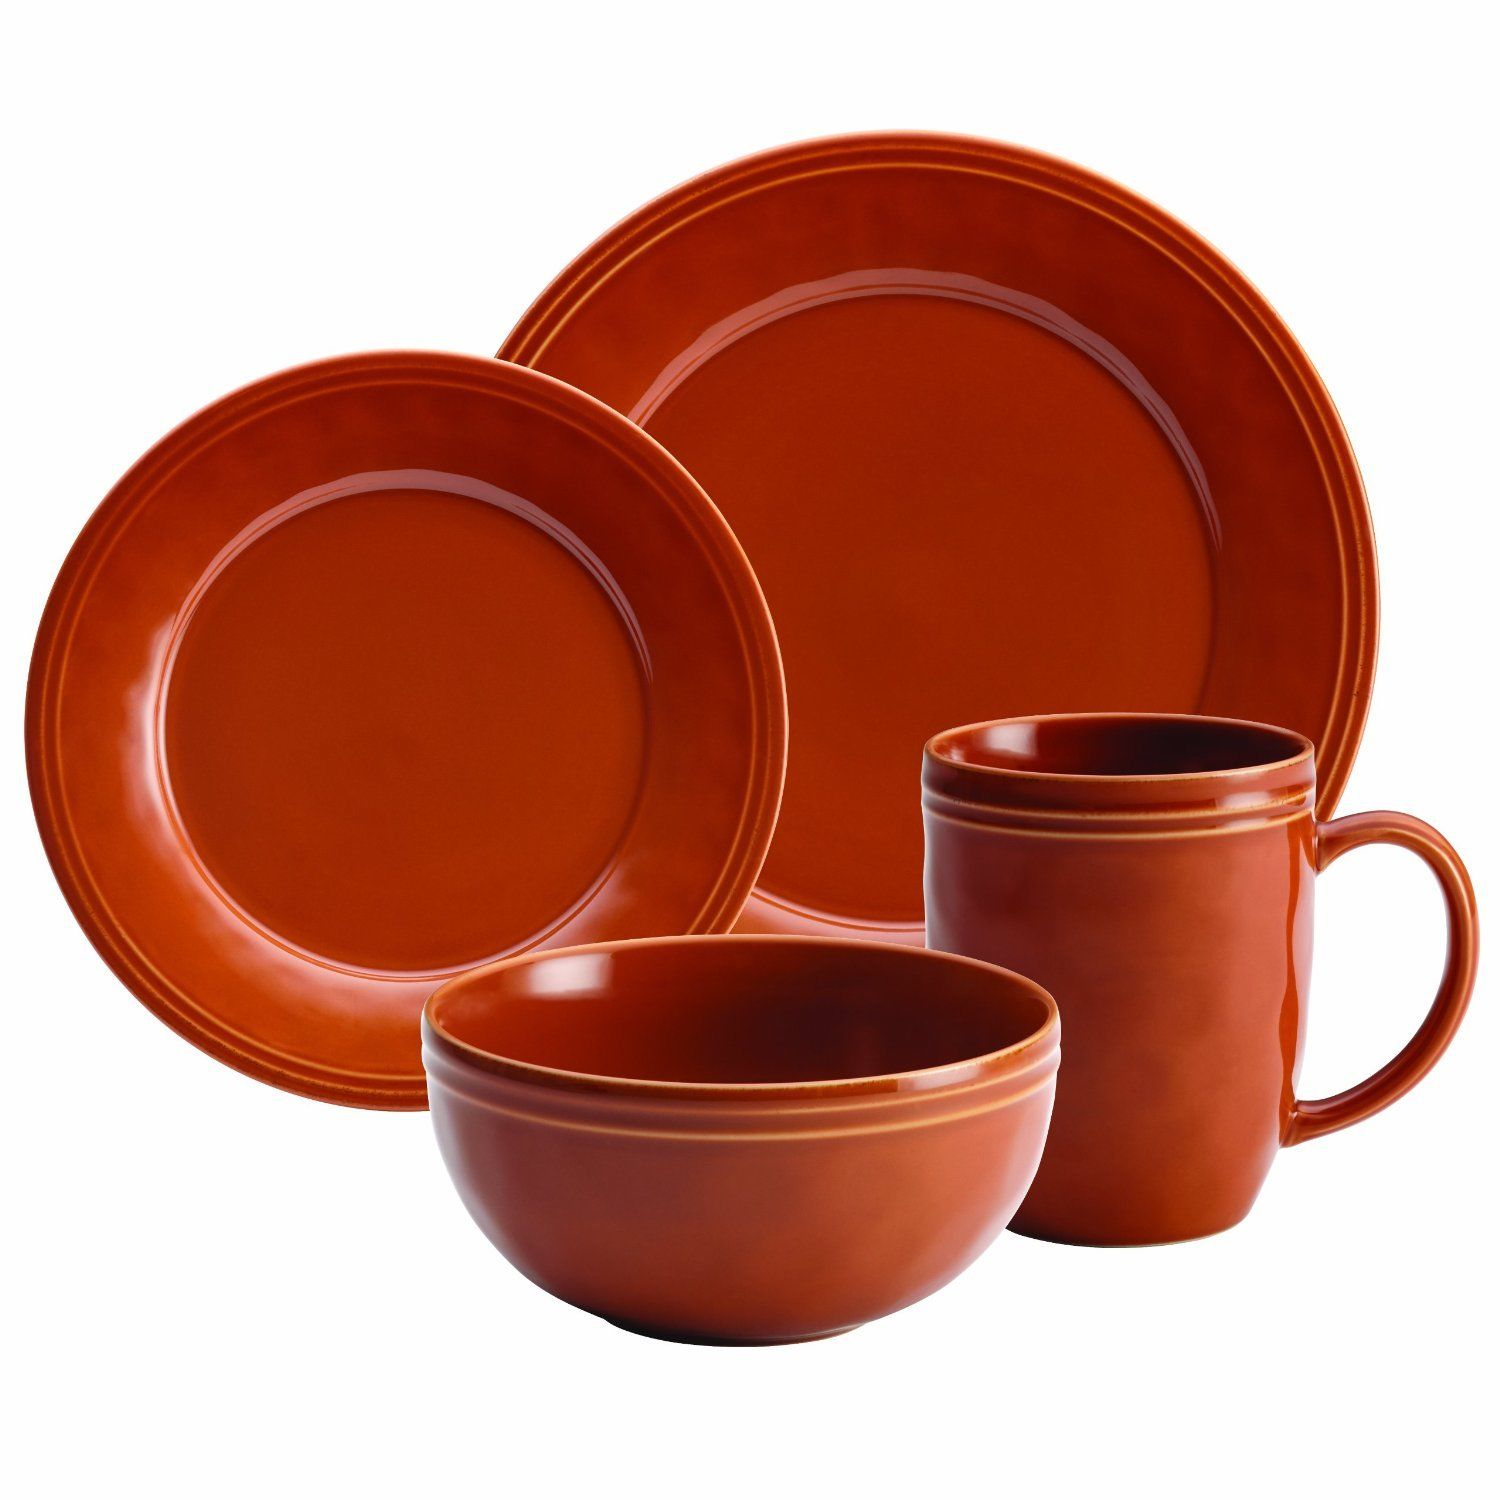 Attractive stoneware dinnerware for kitchen and dining sets with stoneware dinnerware sets